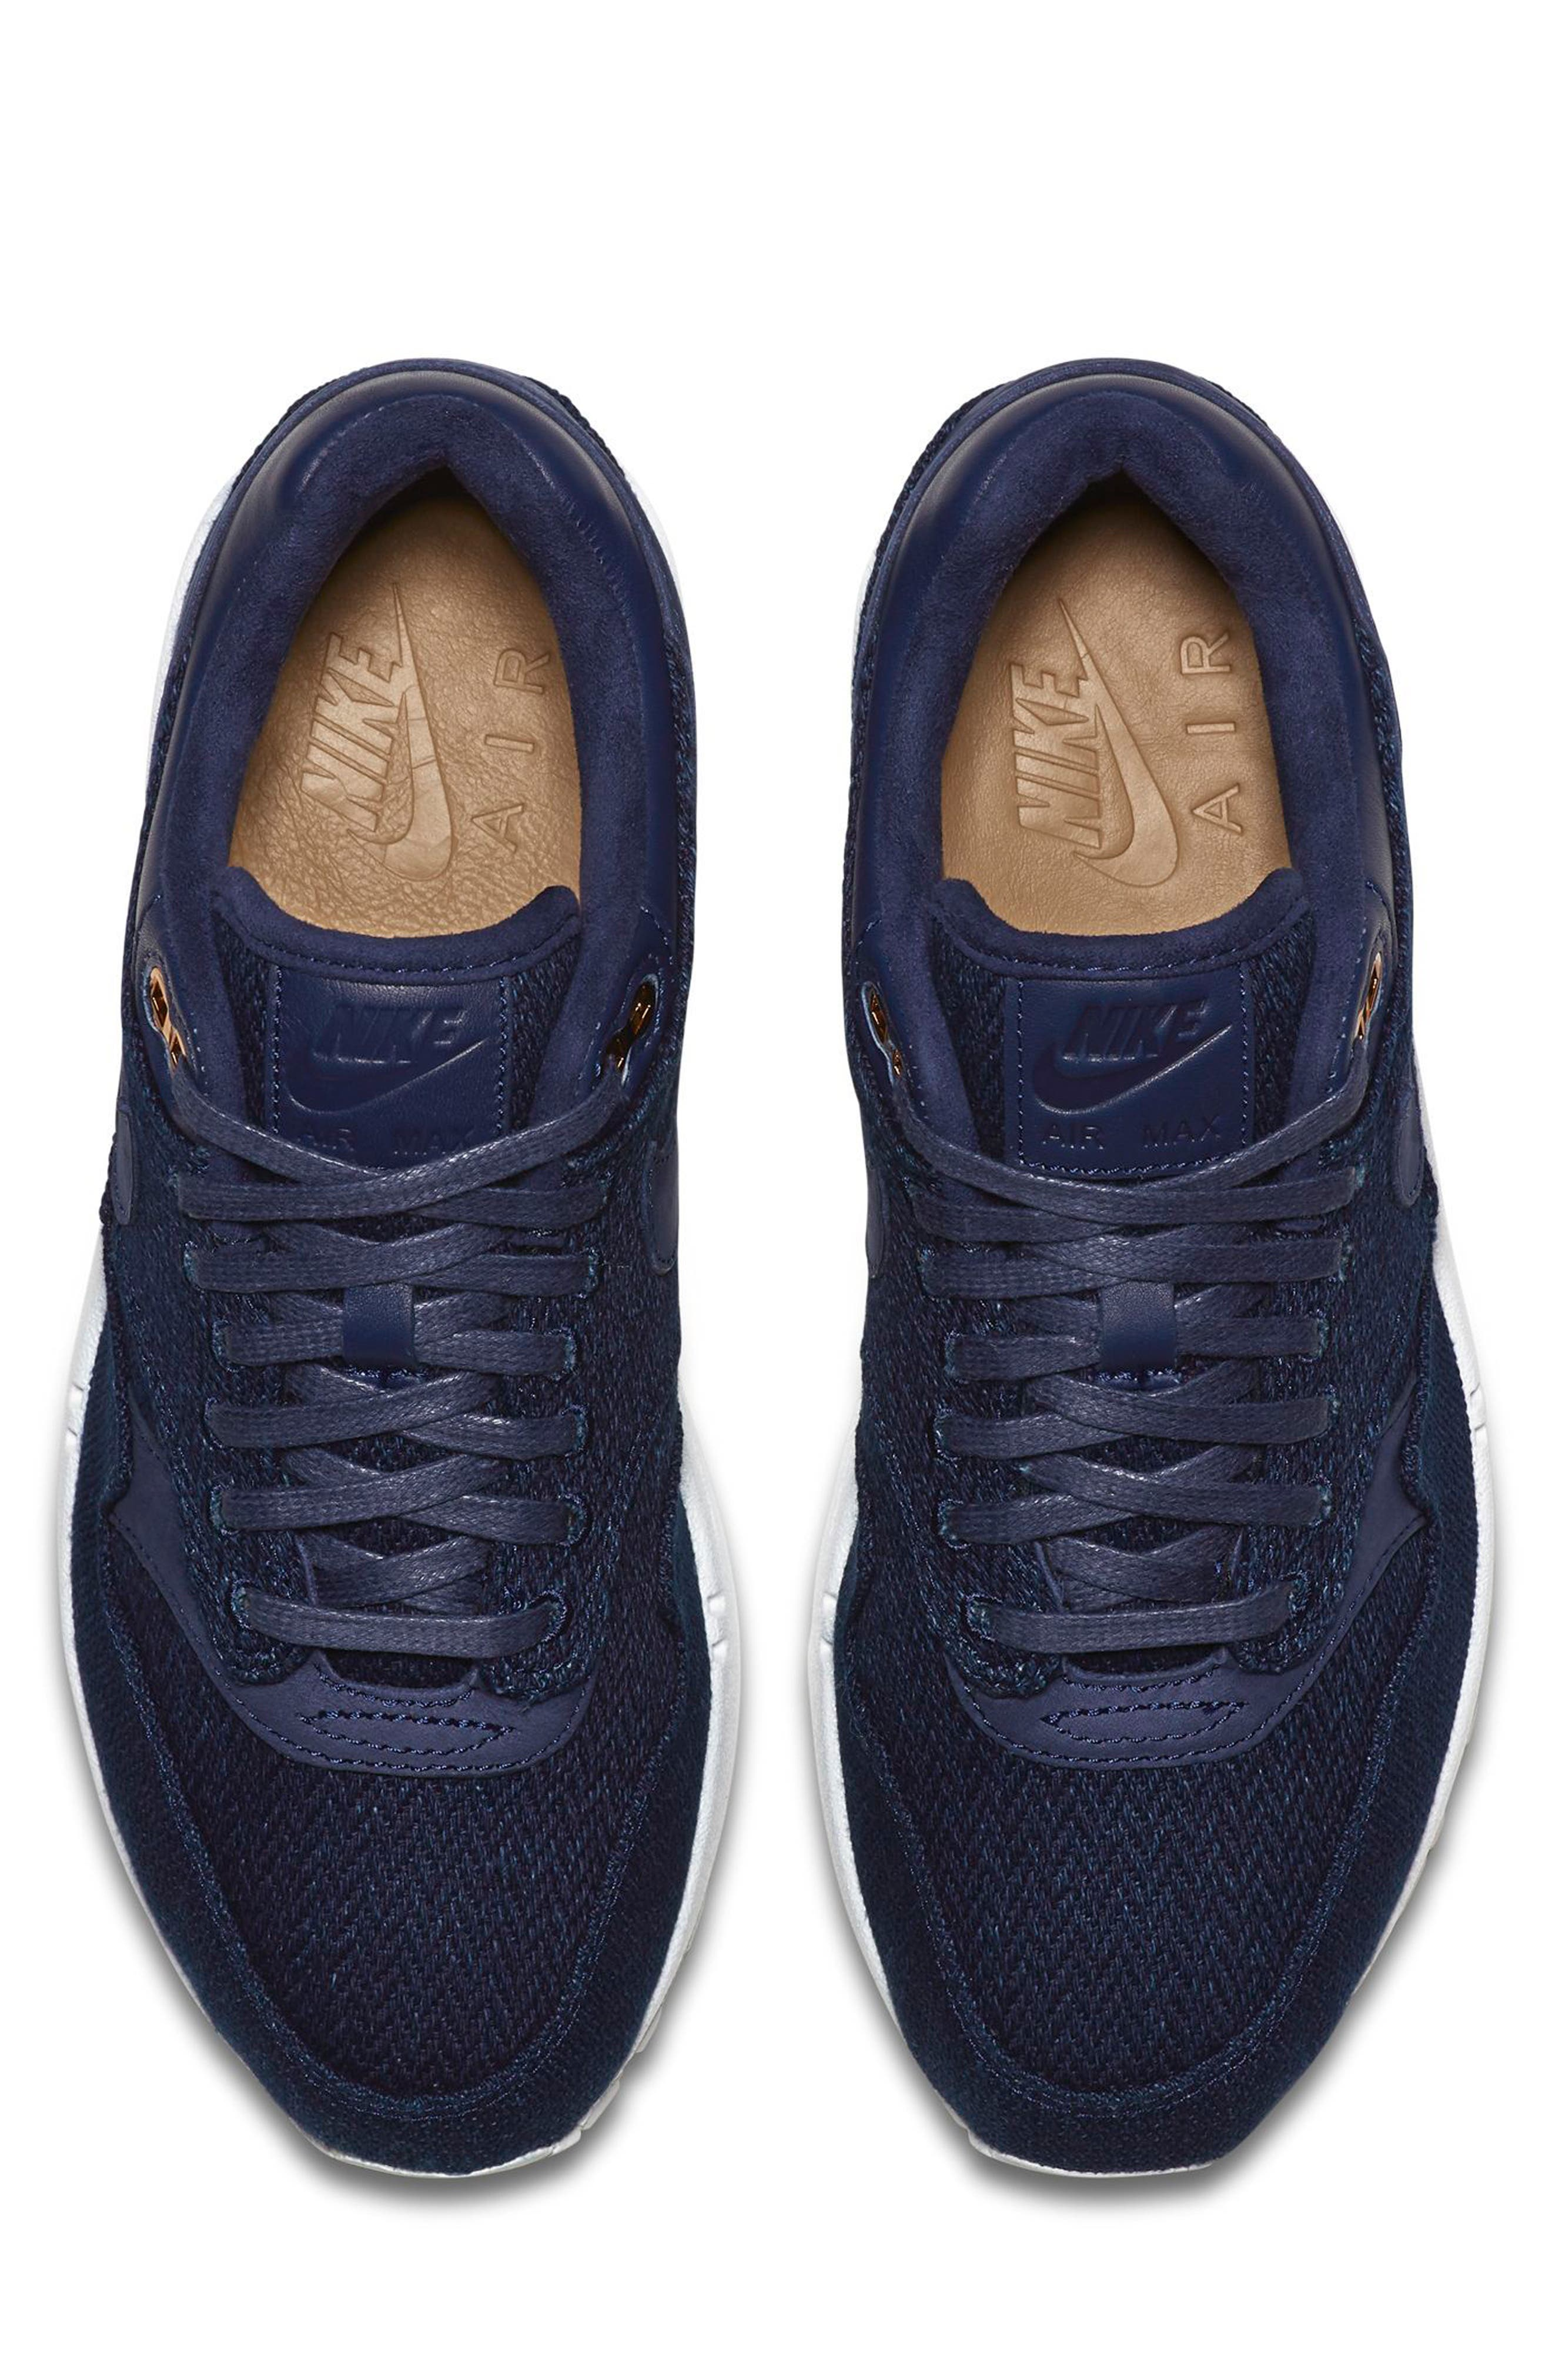 Air Max 1 Lux Sneaker,                             Alternate thumbnail 4, color,                             Binary Blue/ White/ Stout